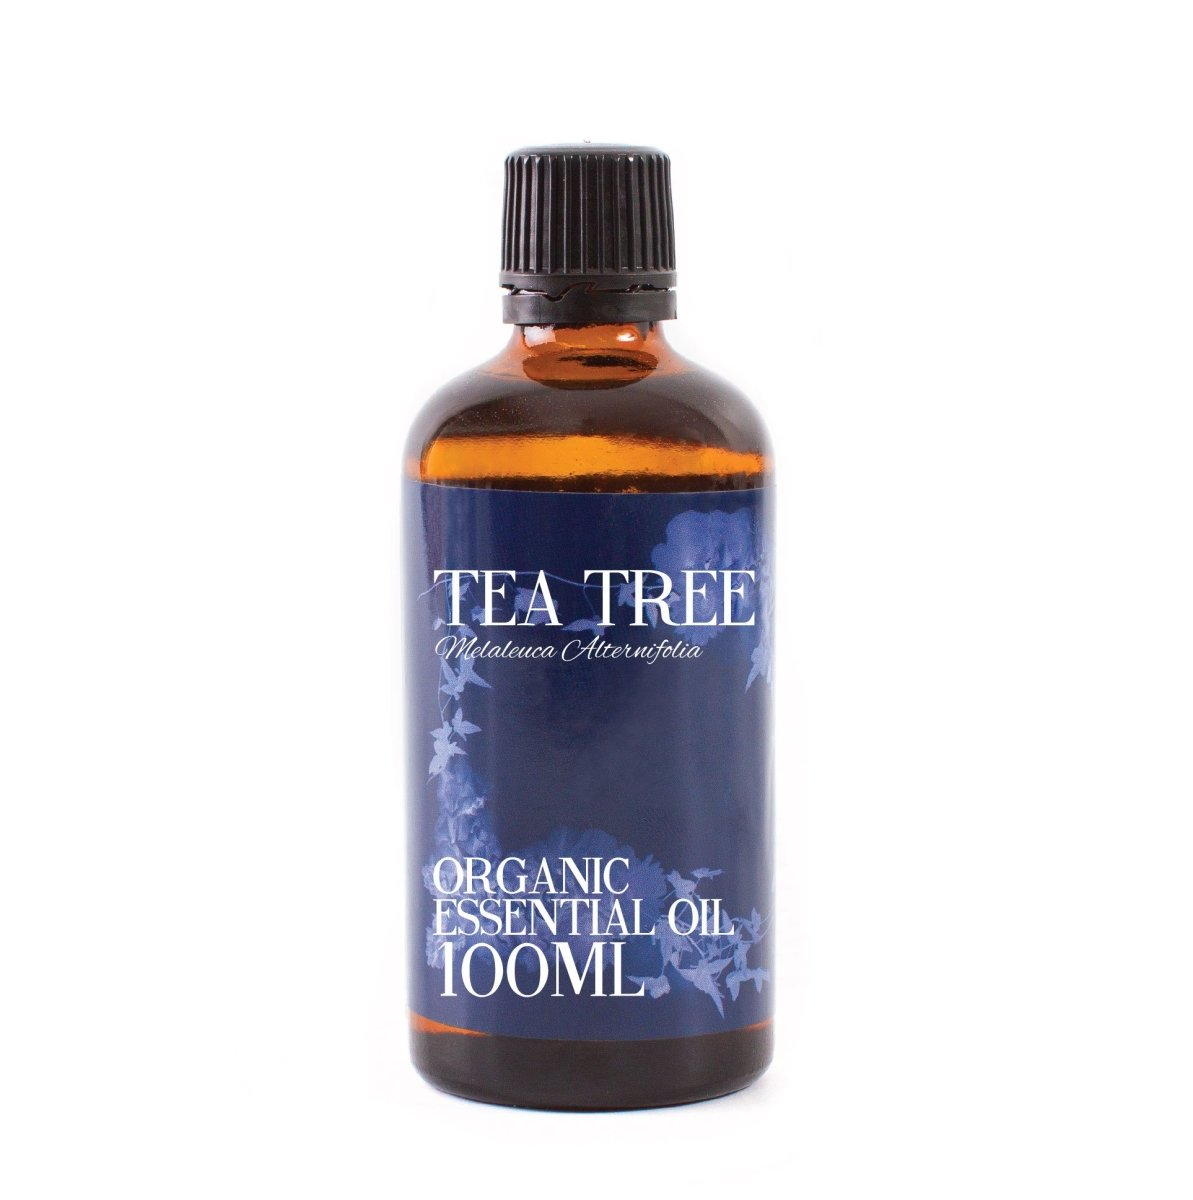 Tea Tree Organic Essential Oil - Mystic Moments UK